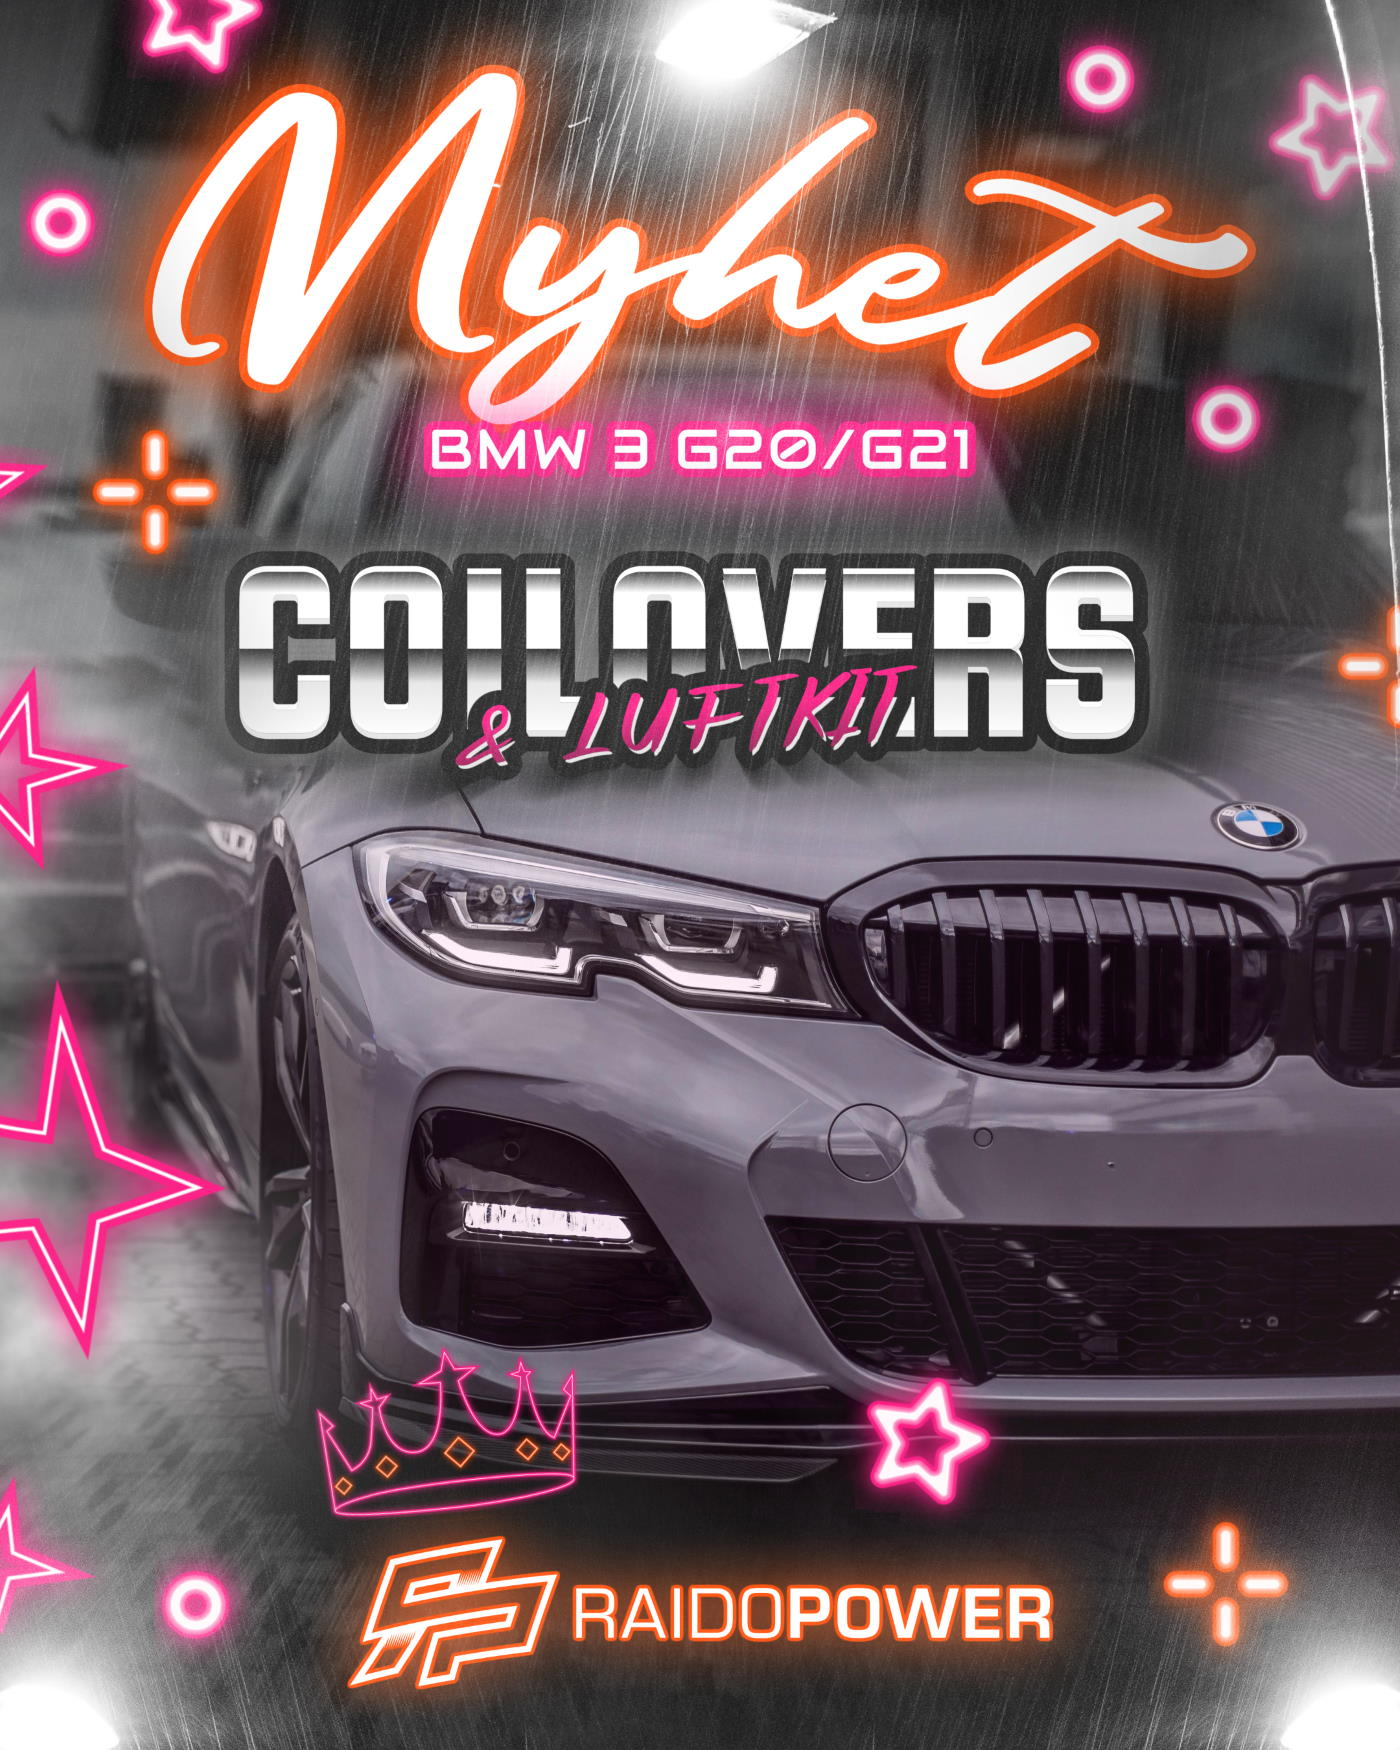 K-sport Coilovers Luftkit Nyhet BMW G20 G21